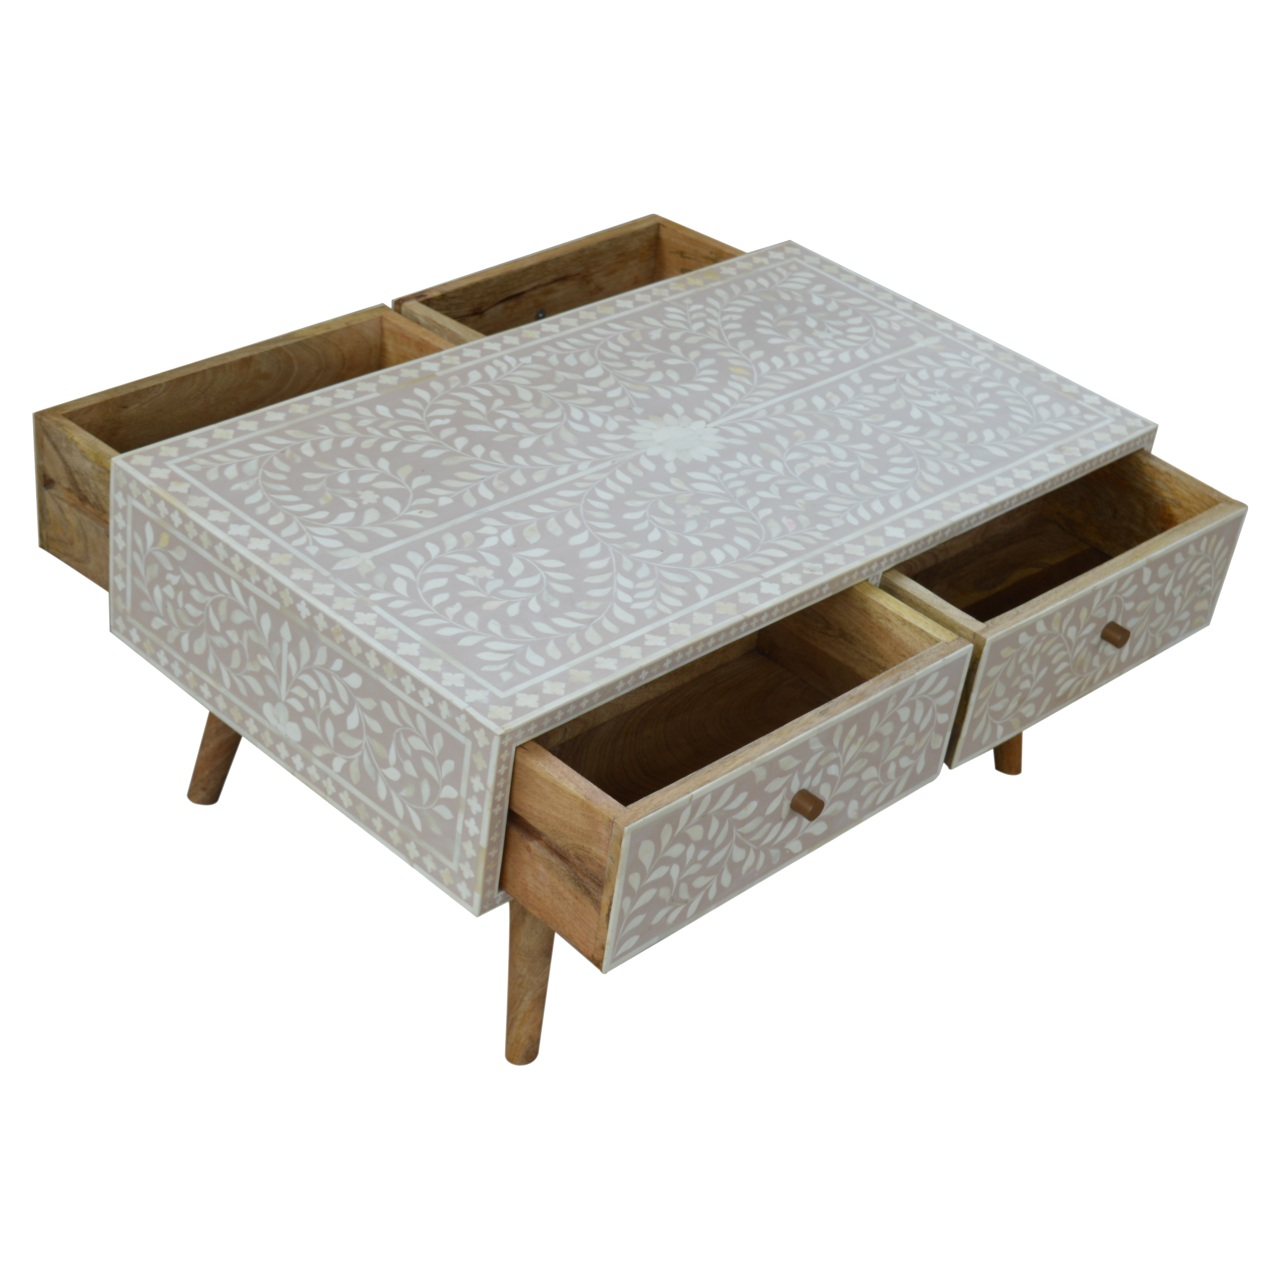 Light-Taupe-Floral-Bone-Inlay-Coffee-Table-3